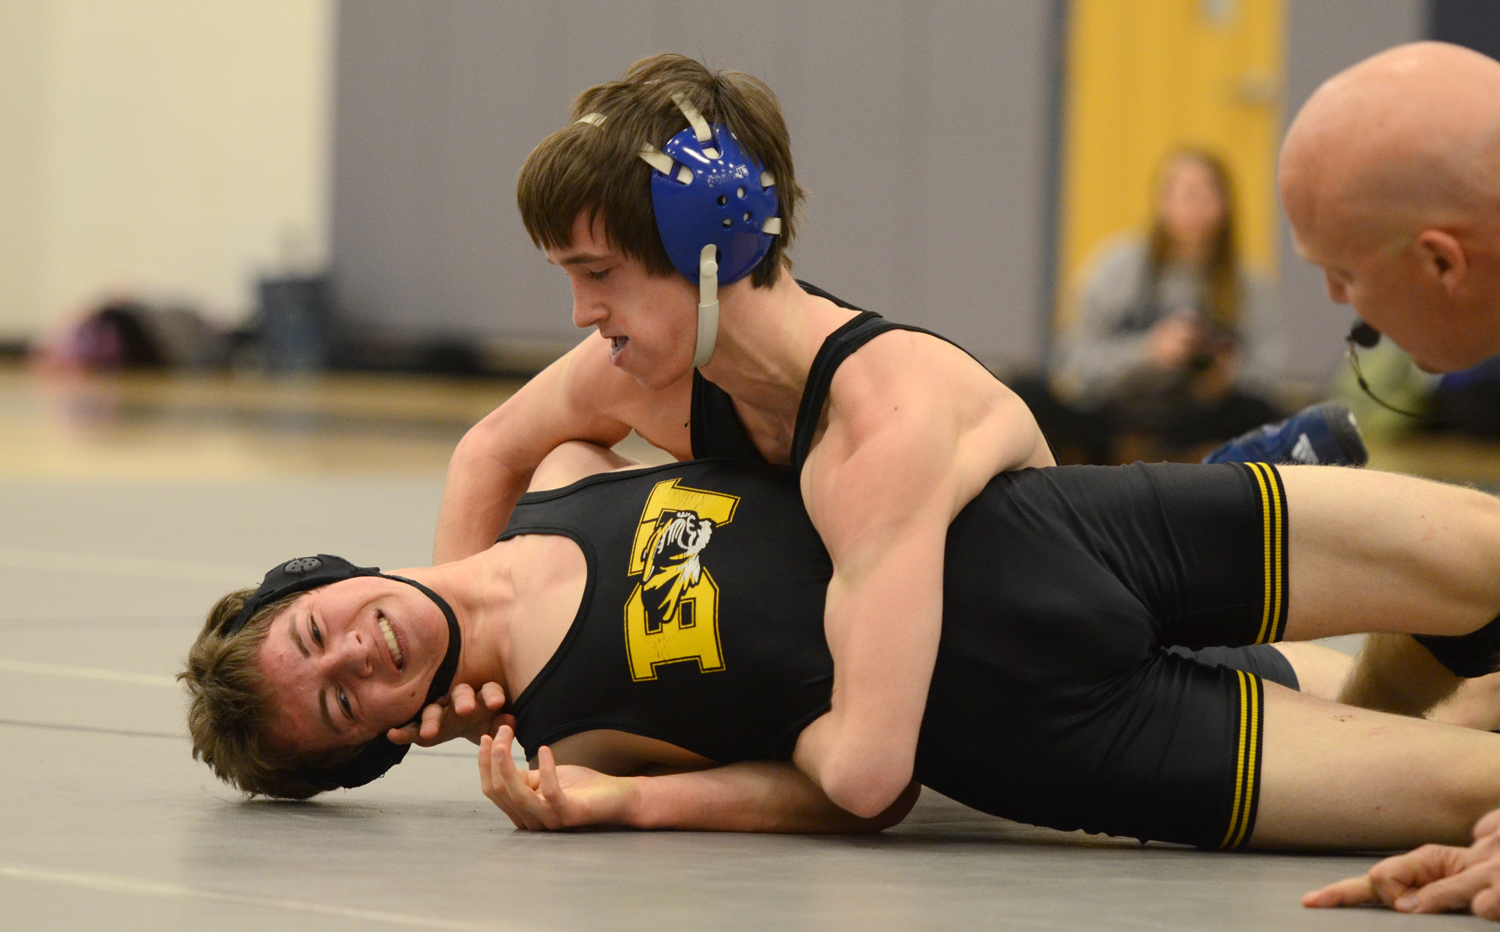 Wrestlers Surprise Competition at State